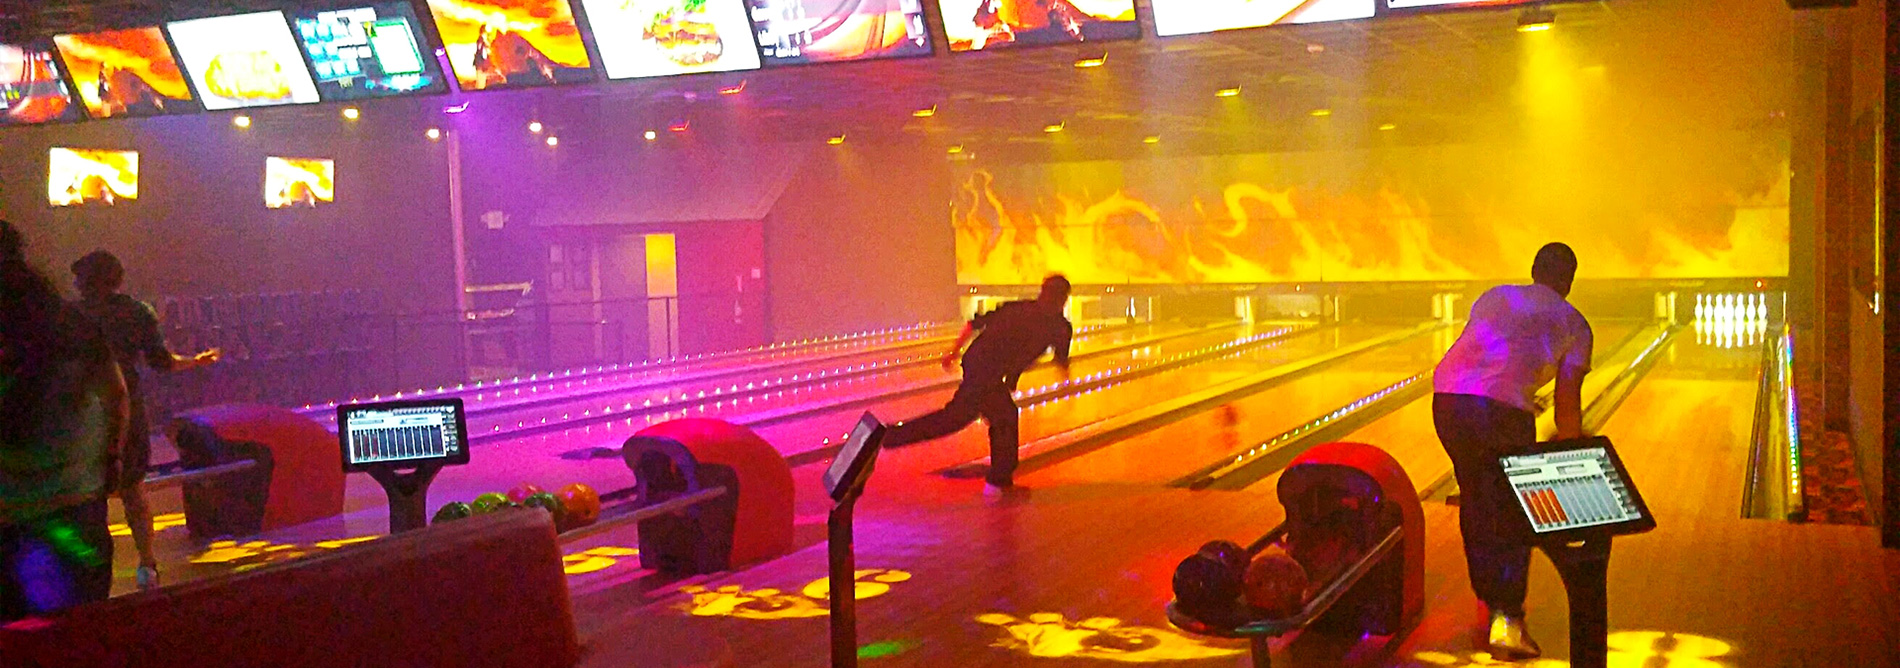 QUBICAAMF-bowling-boutique-The-Firehouse-banner.jpg